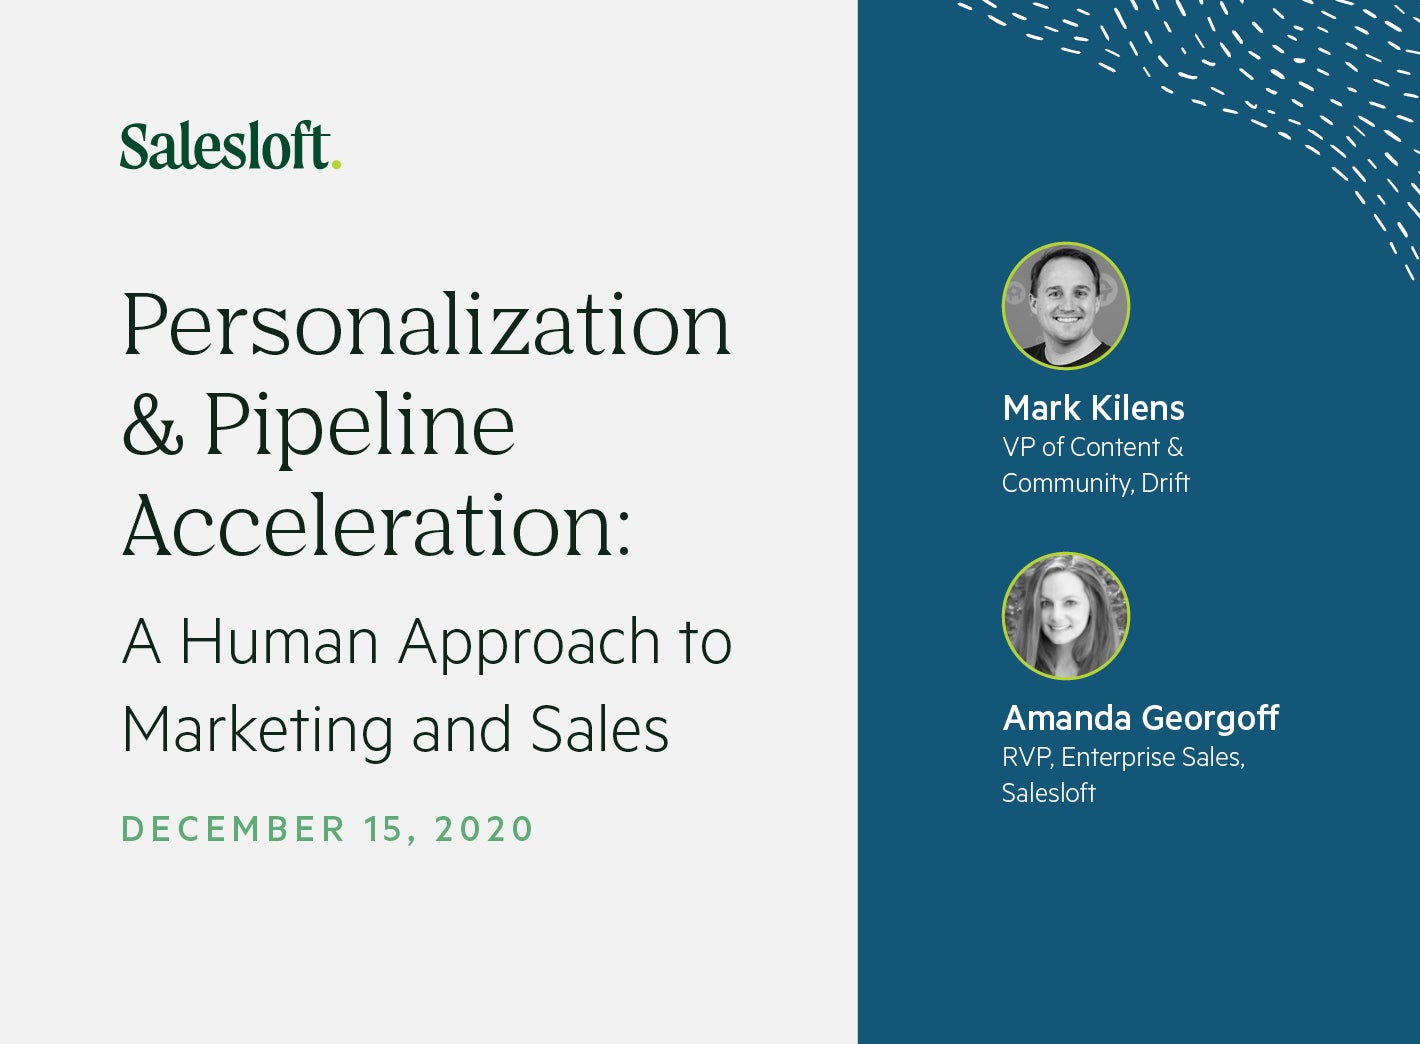 Personalization & Pipeline Acceleration: A Human Approach to Marketing and Sales